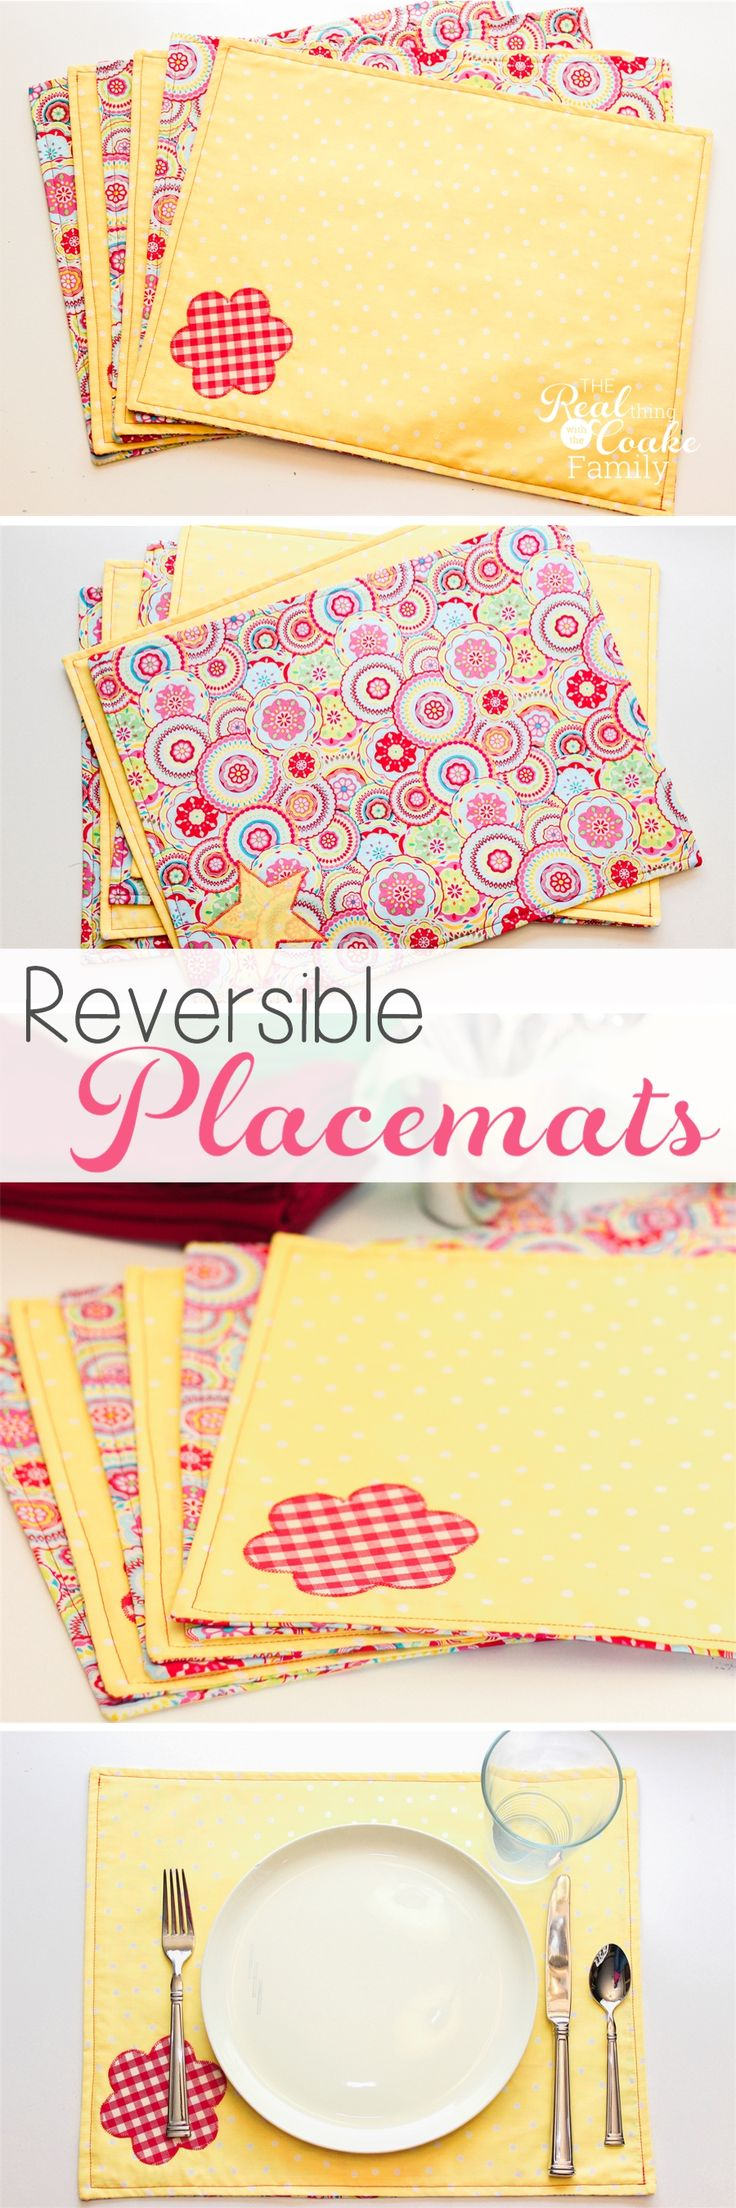 I have wanted to complete this project for so long! I think I bought the fabric back in January. Finally, this week I got placemats made for our family. Now I can show you how to make placemats.Just like the rest of this similar fabric that I used to make a reversible table runner, I wanted…